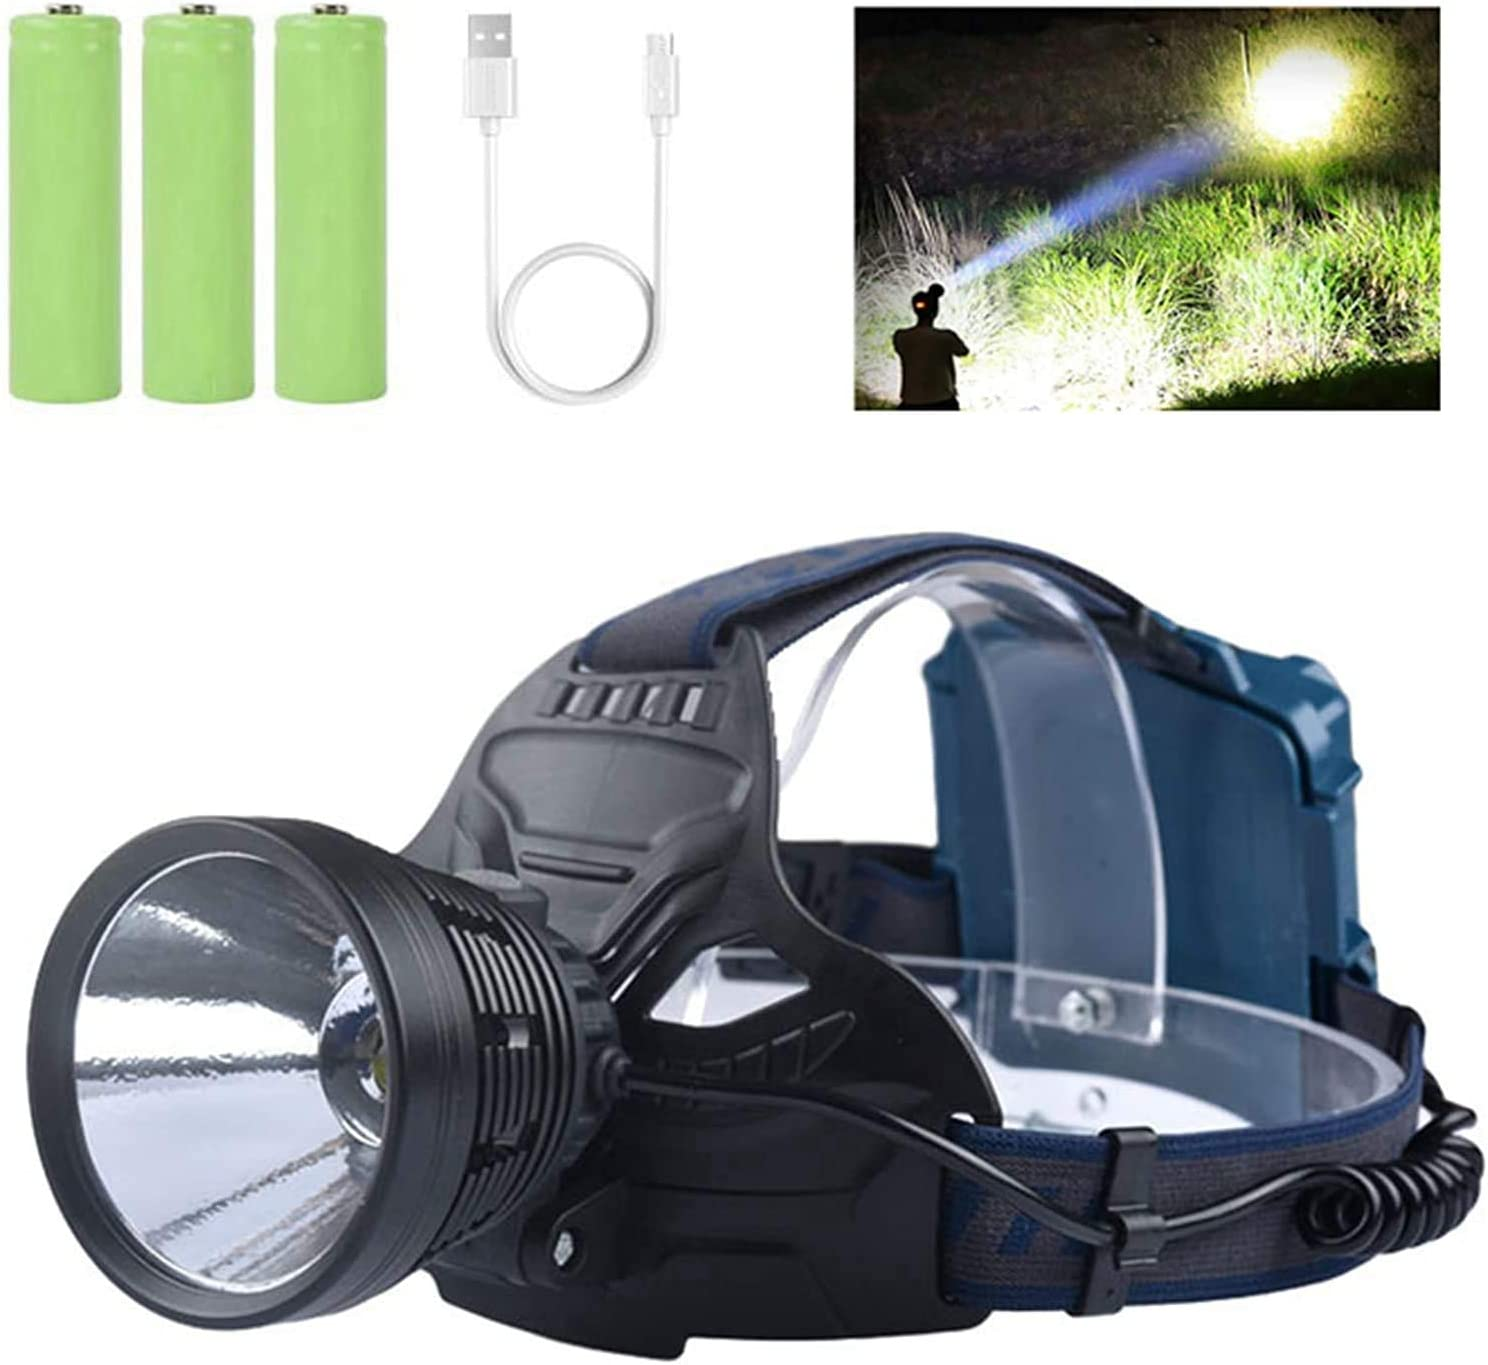 Professional LED Rechargeable Headlamps, Brightest 10000 Lumens KC06 Headlamps